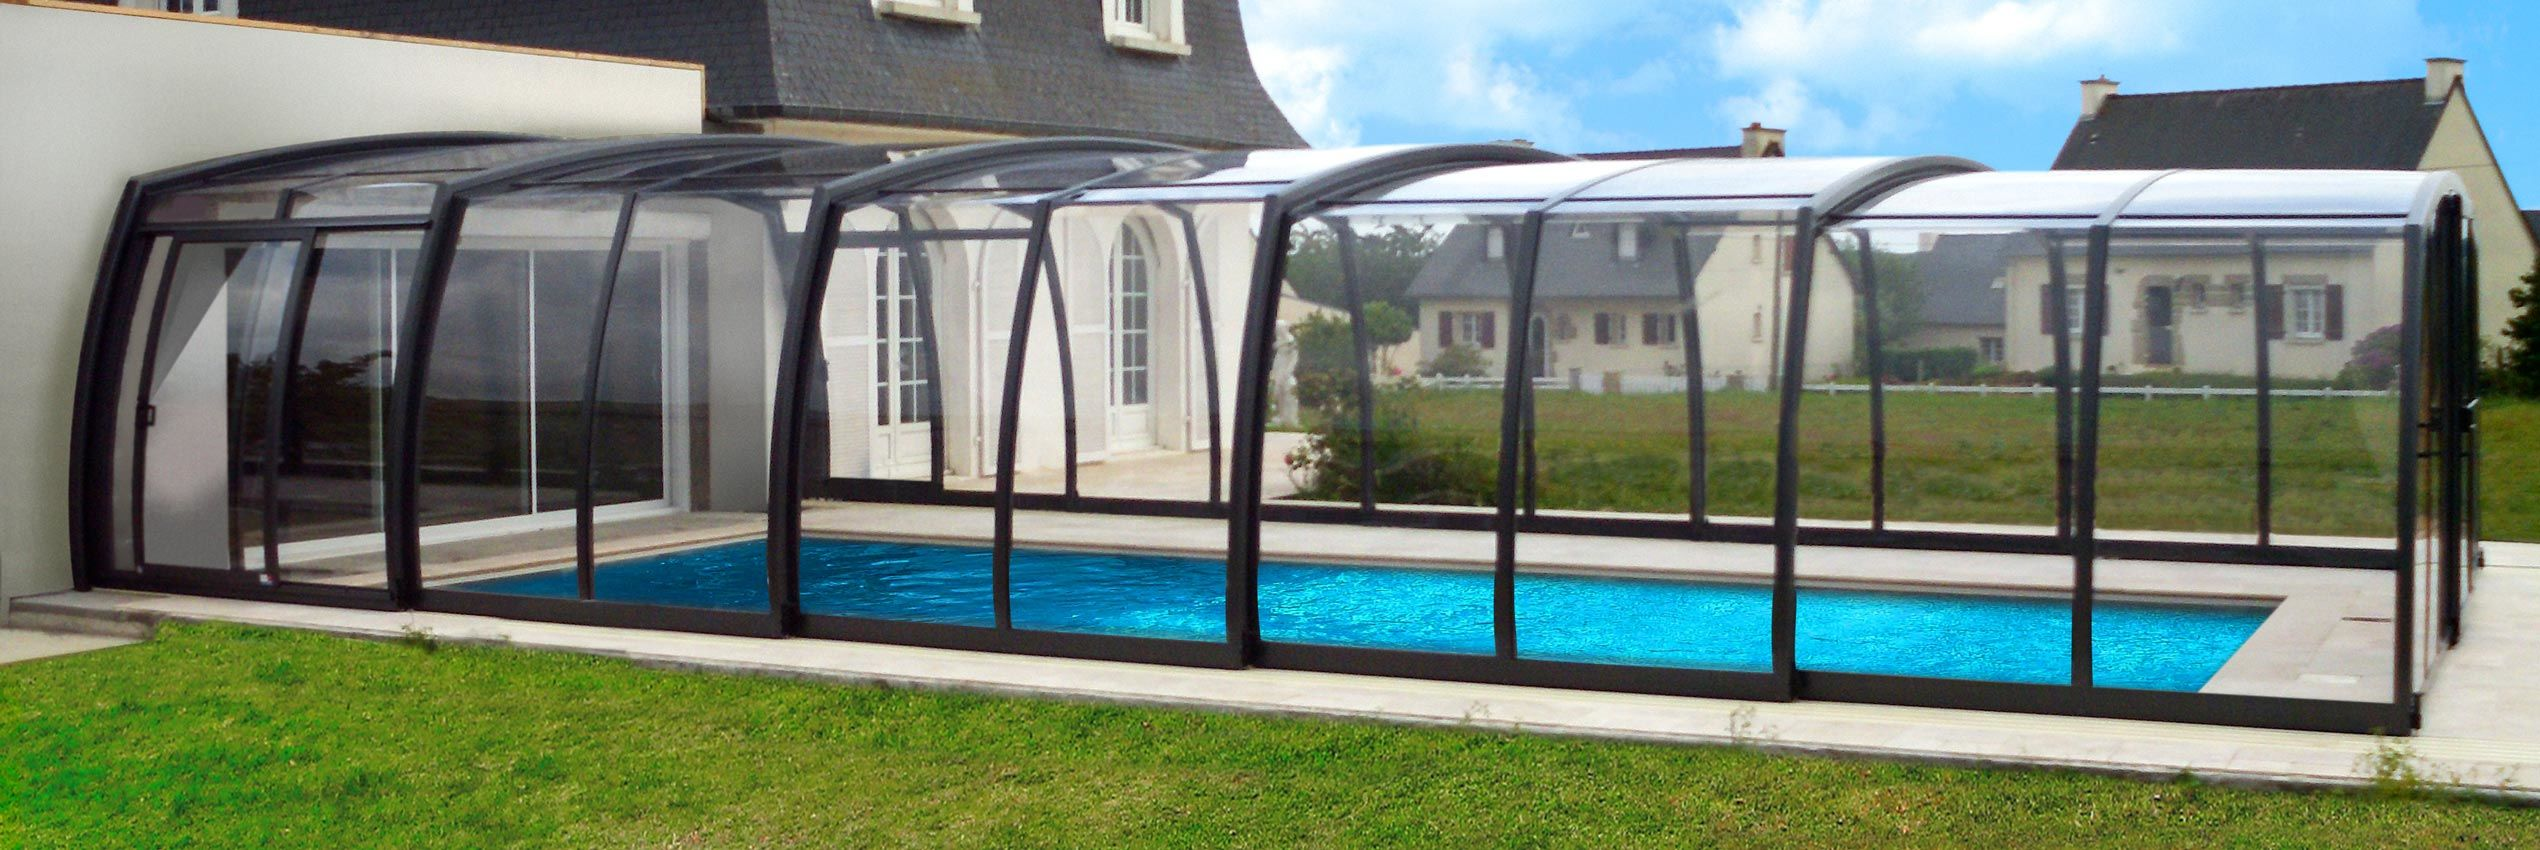 hero-pool-enclosure-omega-conkover-03